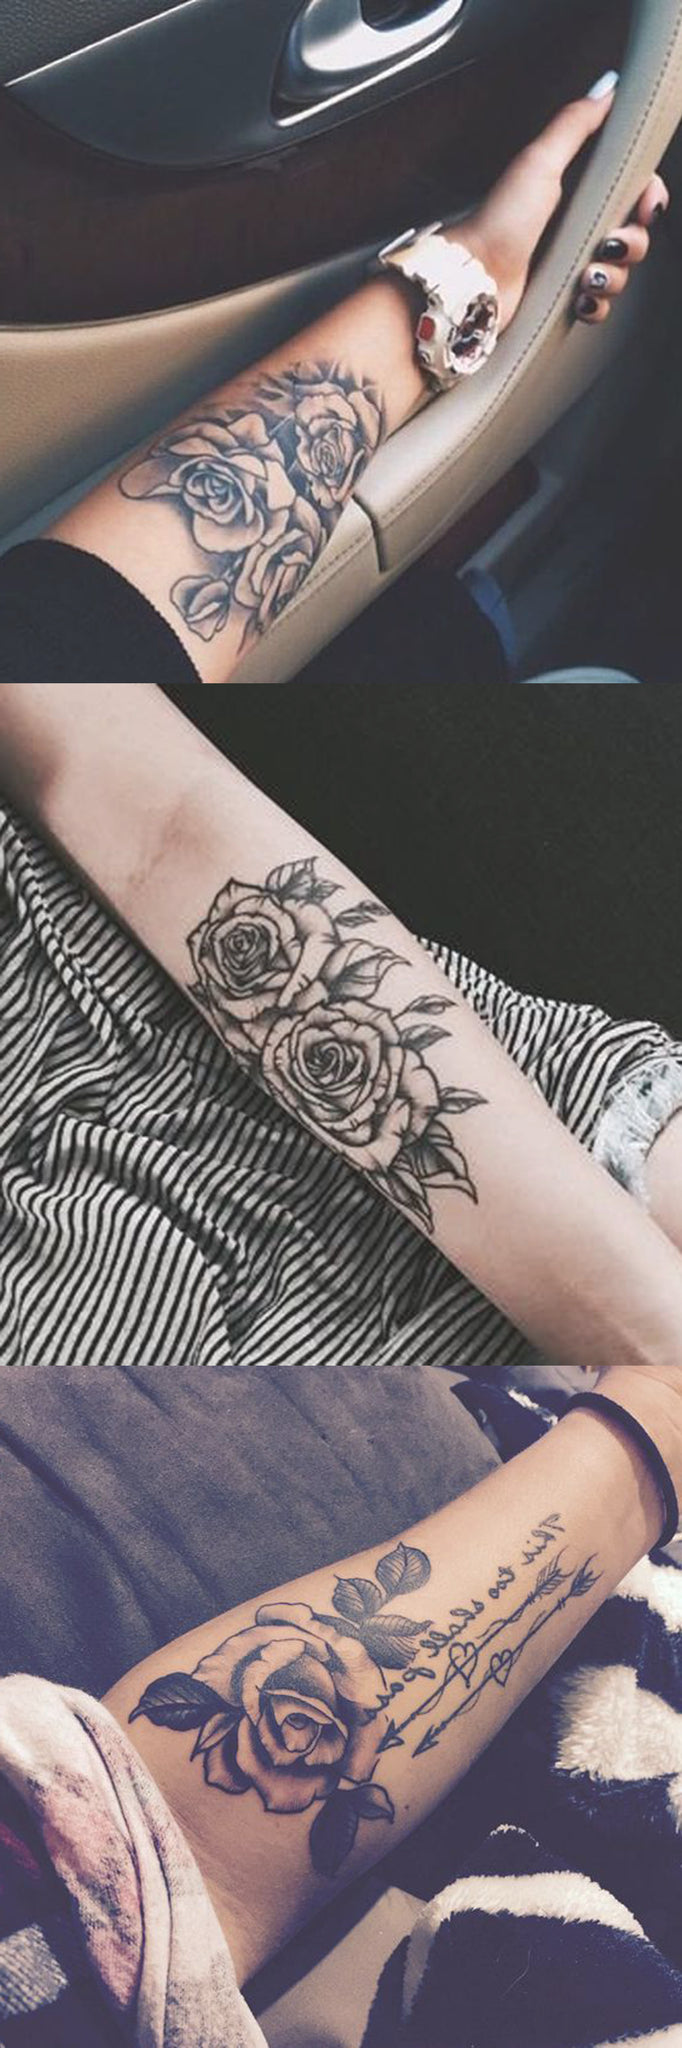 aecac6238 Black Rose Forearm Tattoo Ideas - Girly Realistic Floral Flower Arm Tat - rose  arm sleeve